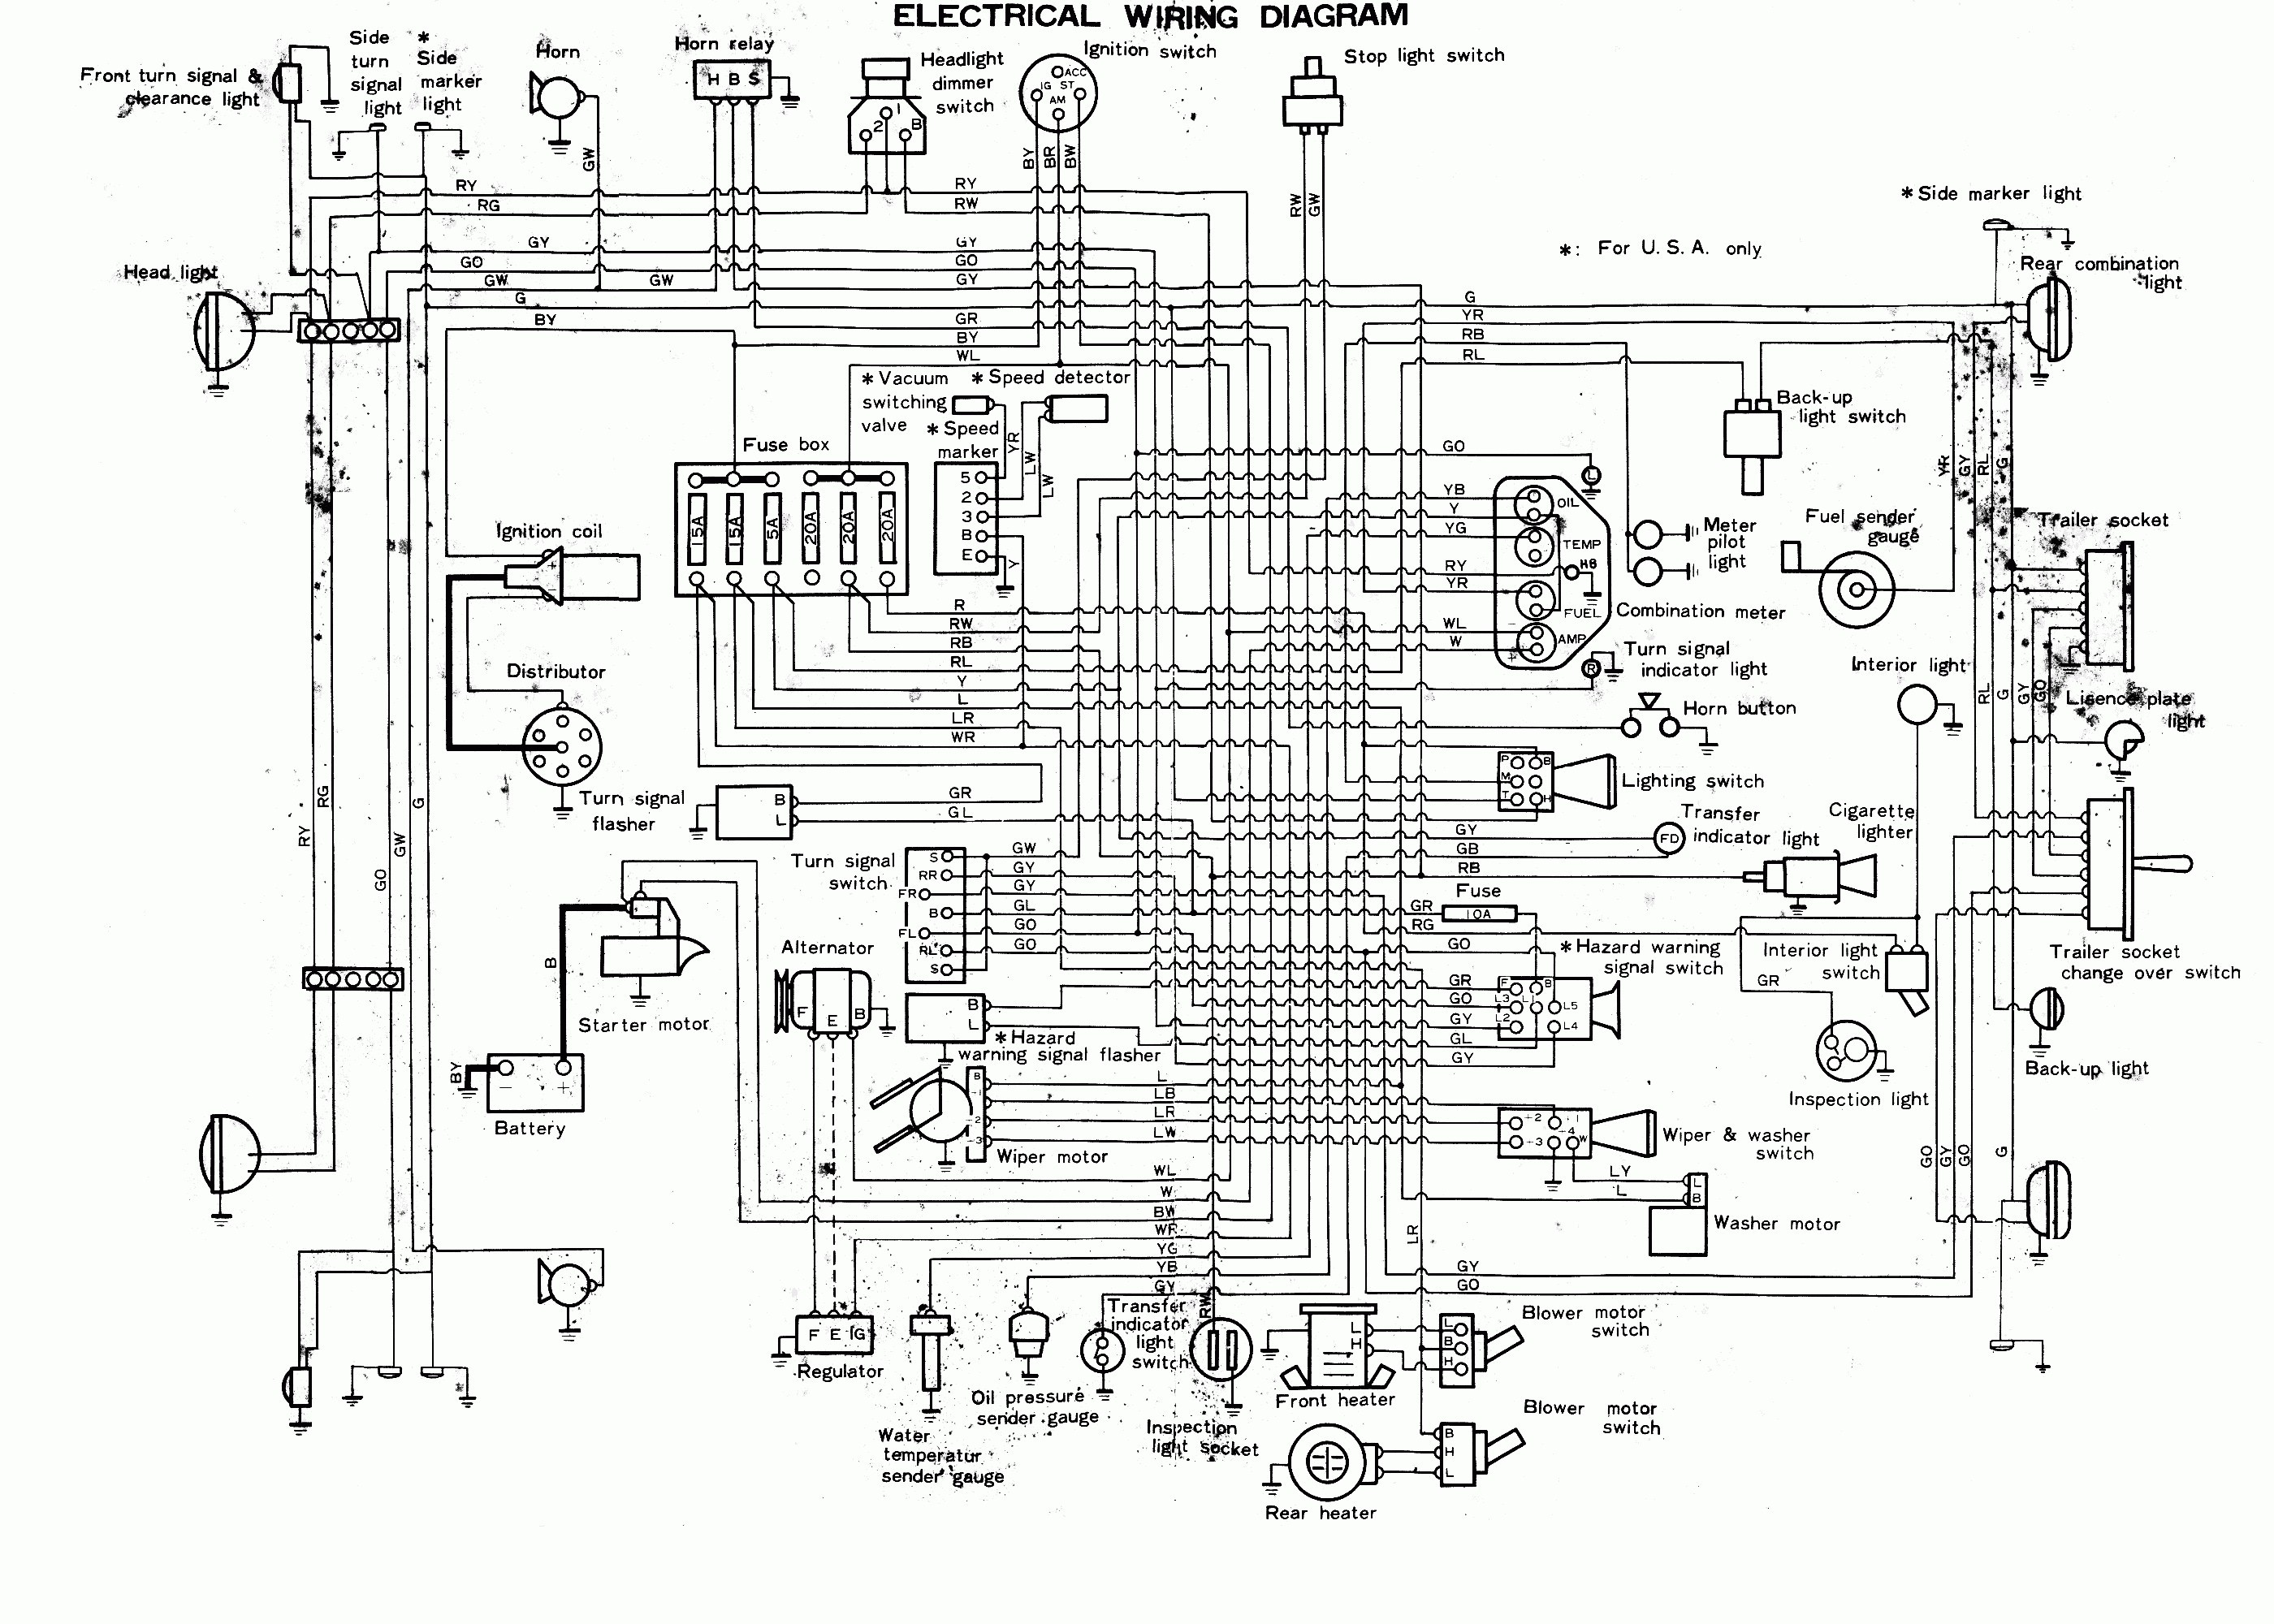 2005 Pt Cruiser Engine Diagram 2006 2 4l 2002 Chrysler Wiring Services Of